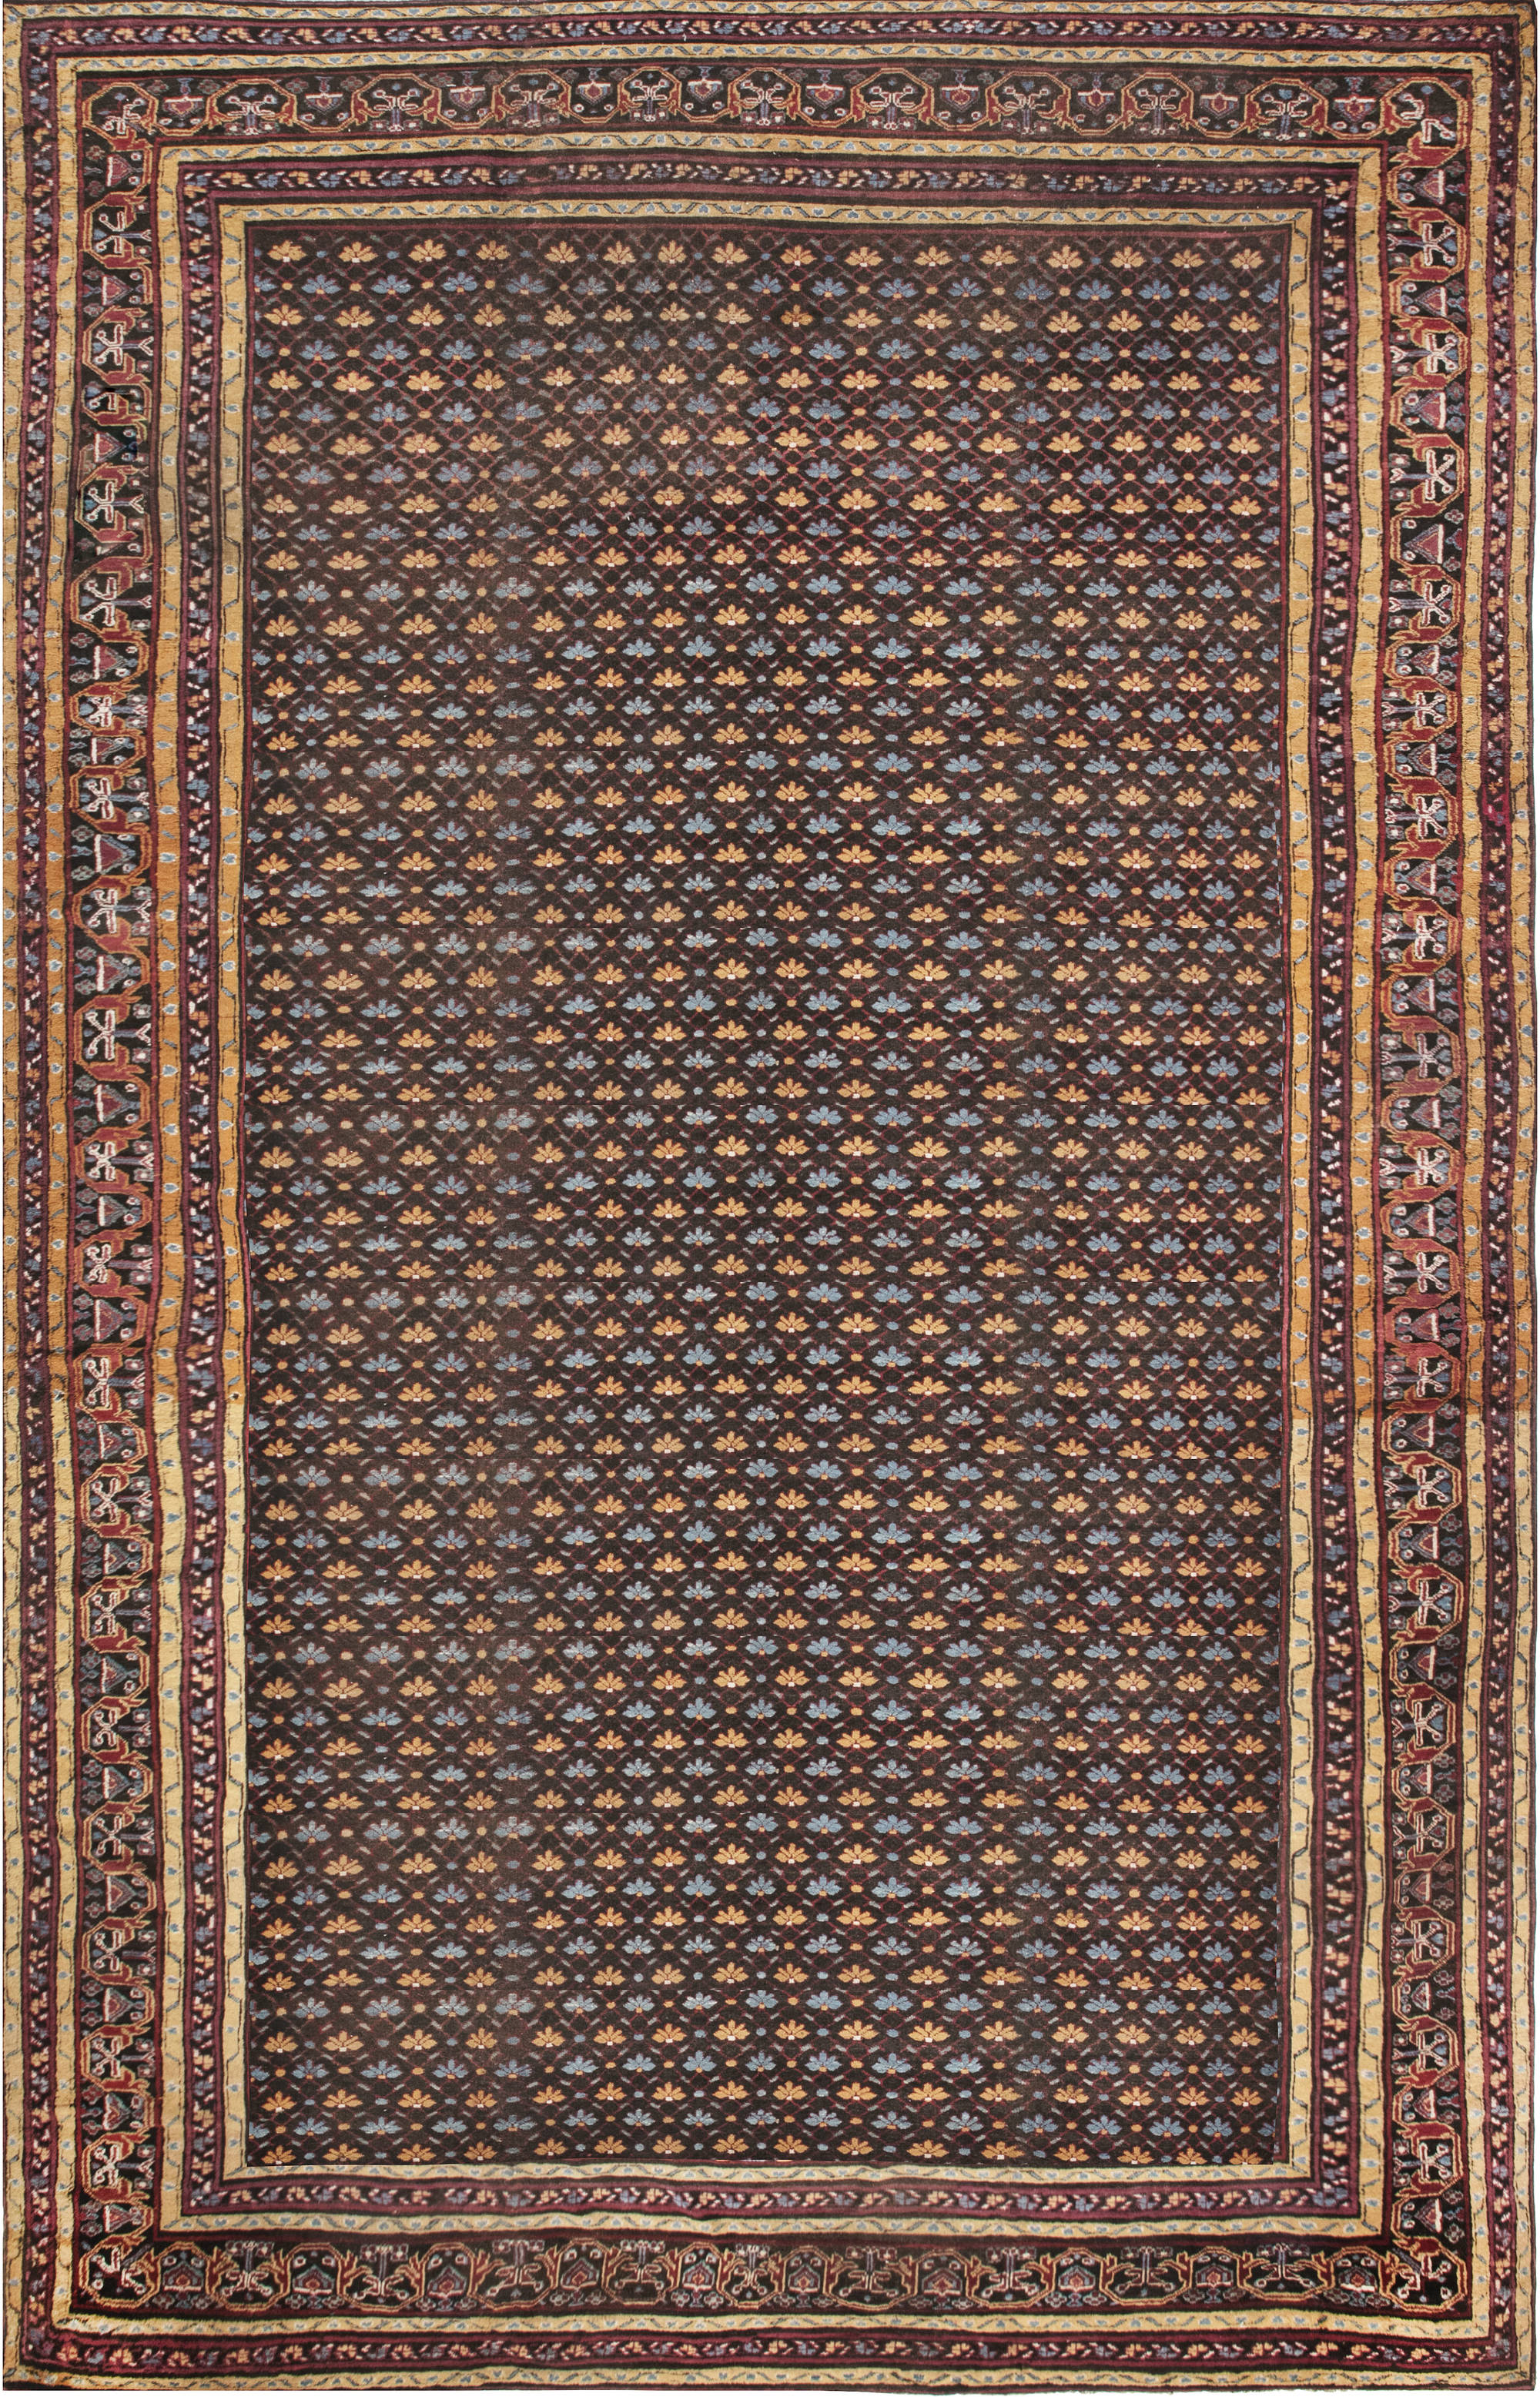 Antique Indian Rug Bb3137 By Dlb